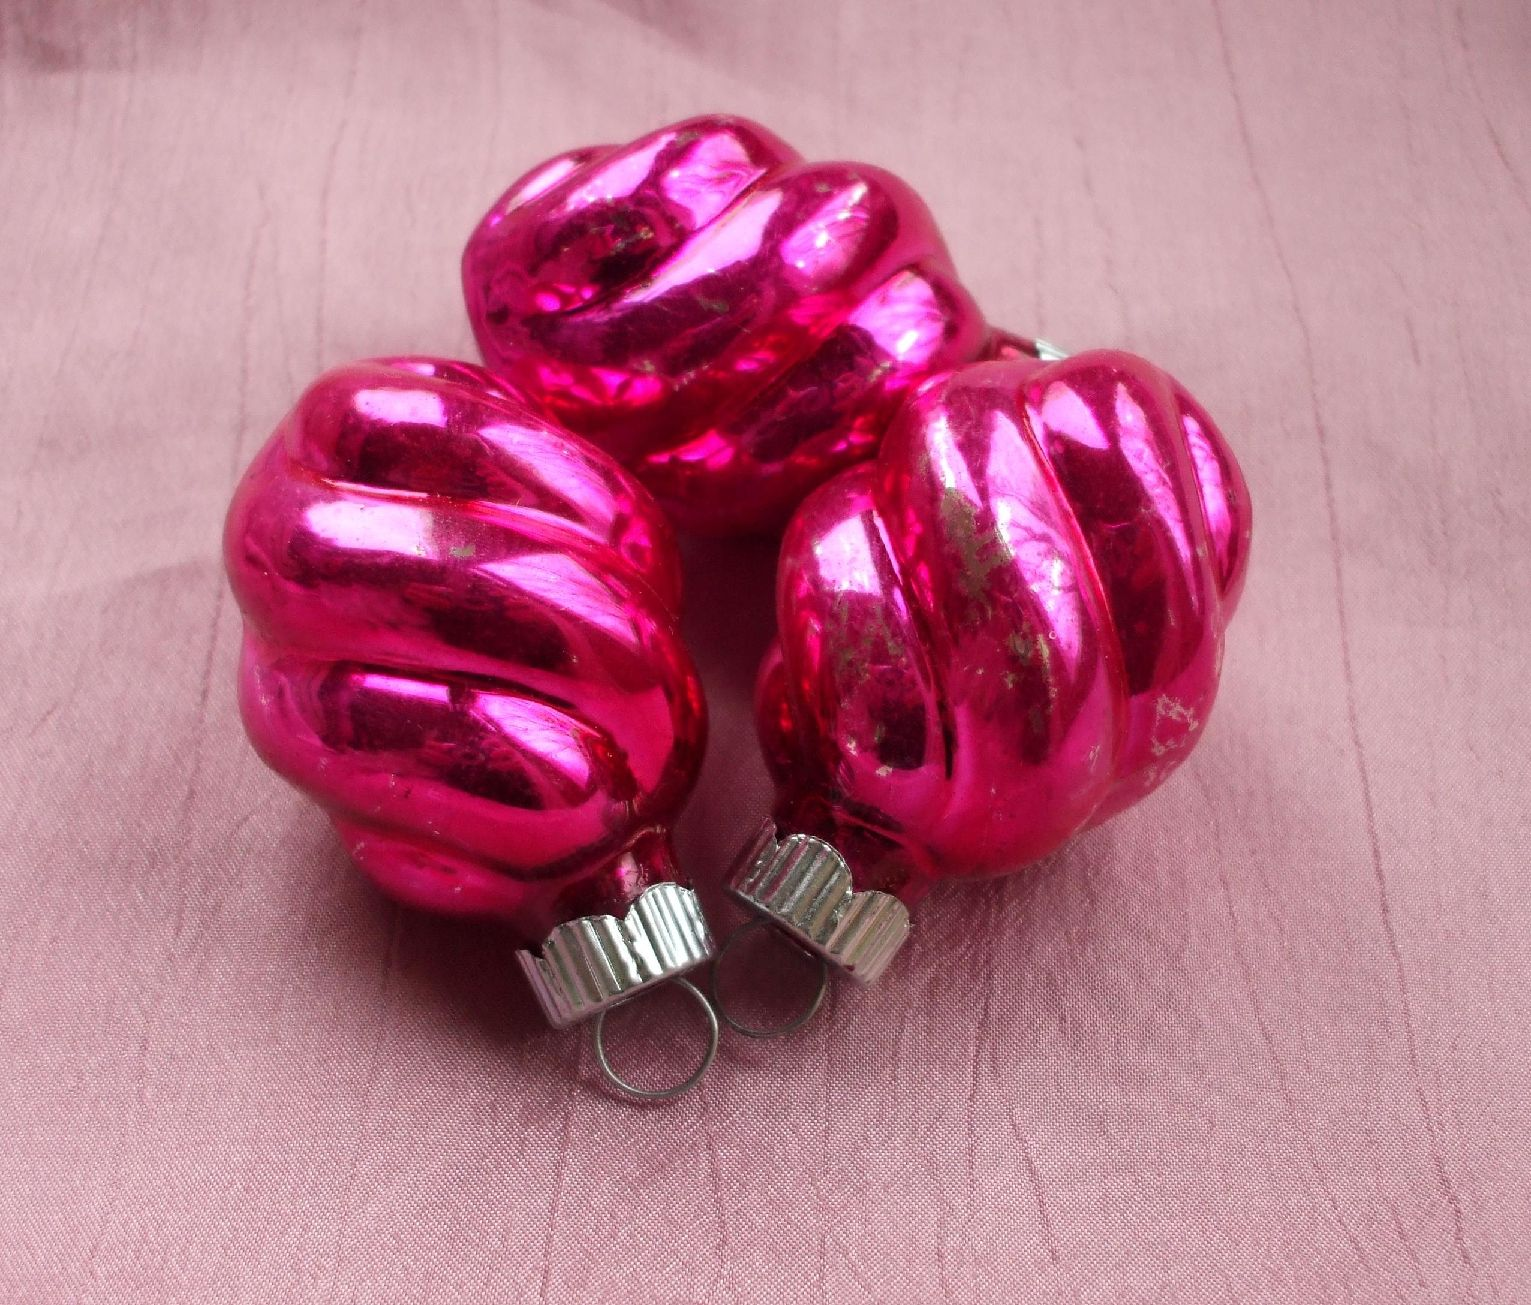 Shiny Brites - vintage Christmas tree ornament, snails, aka twists